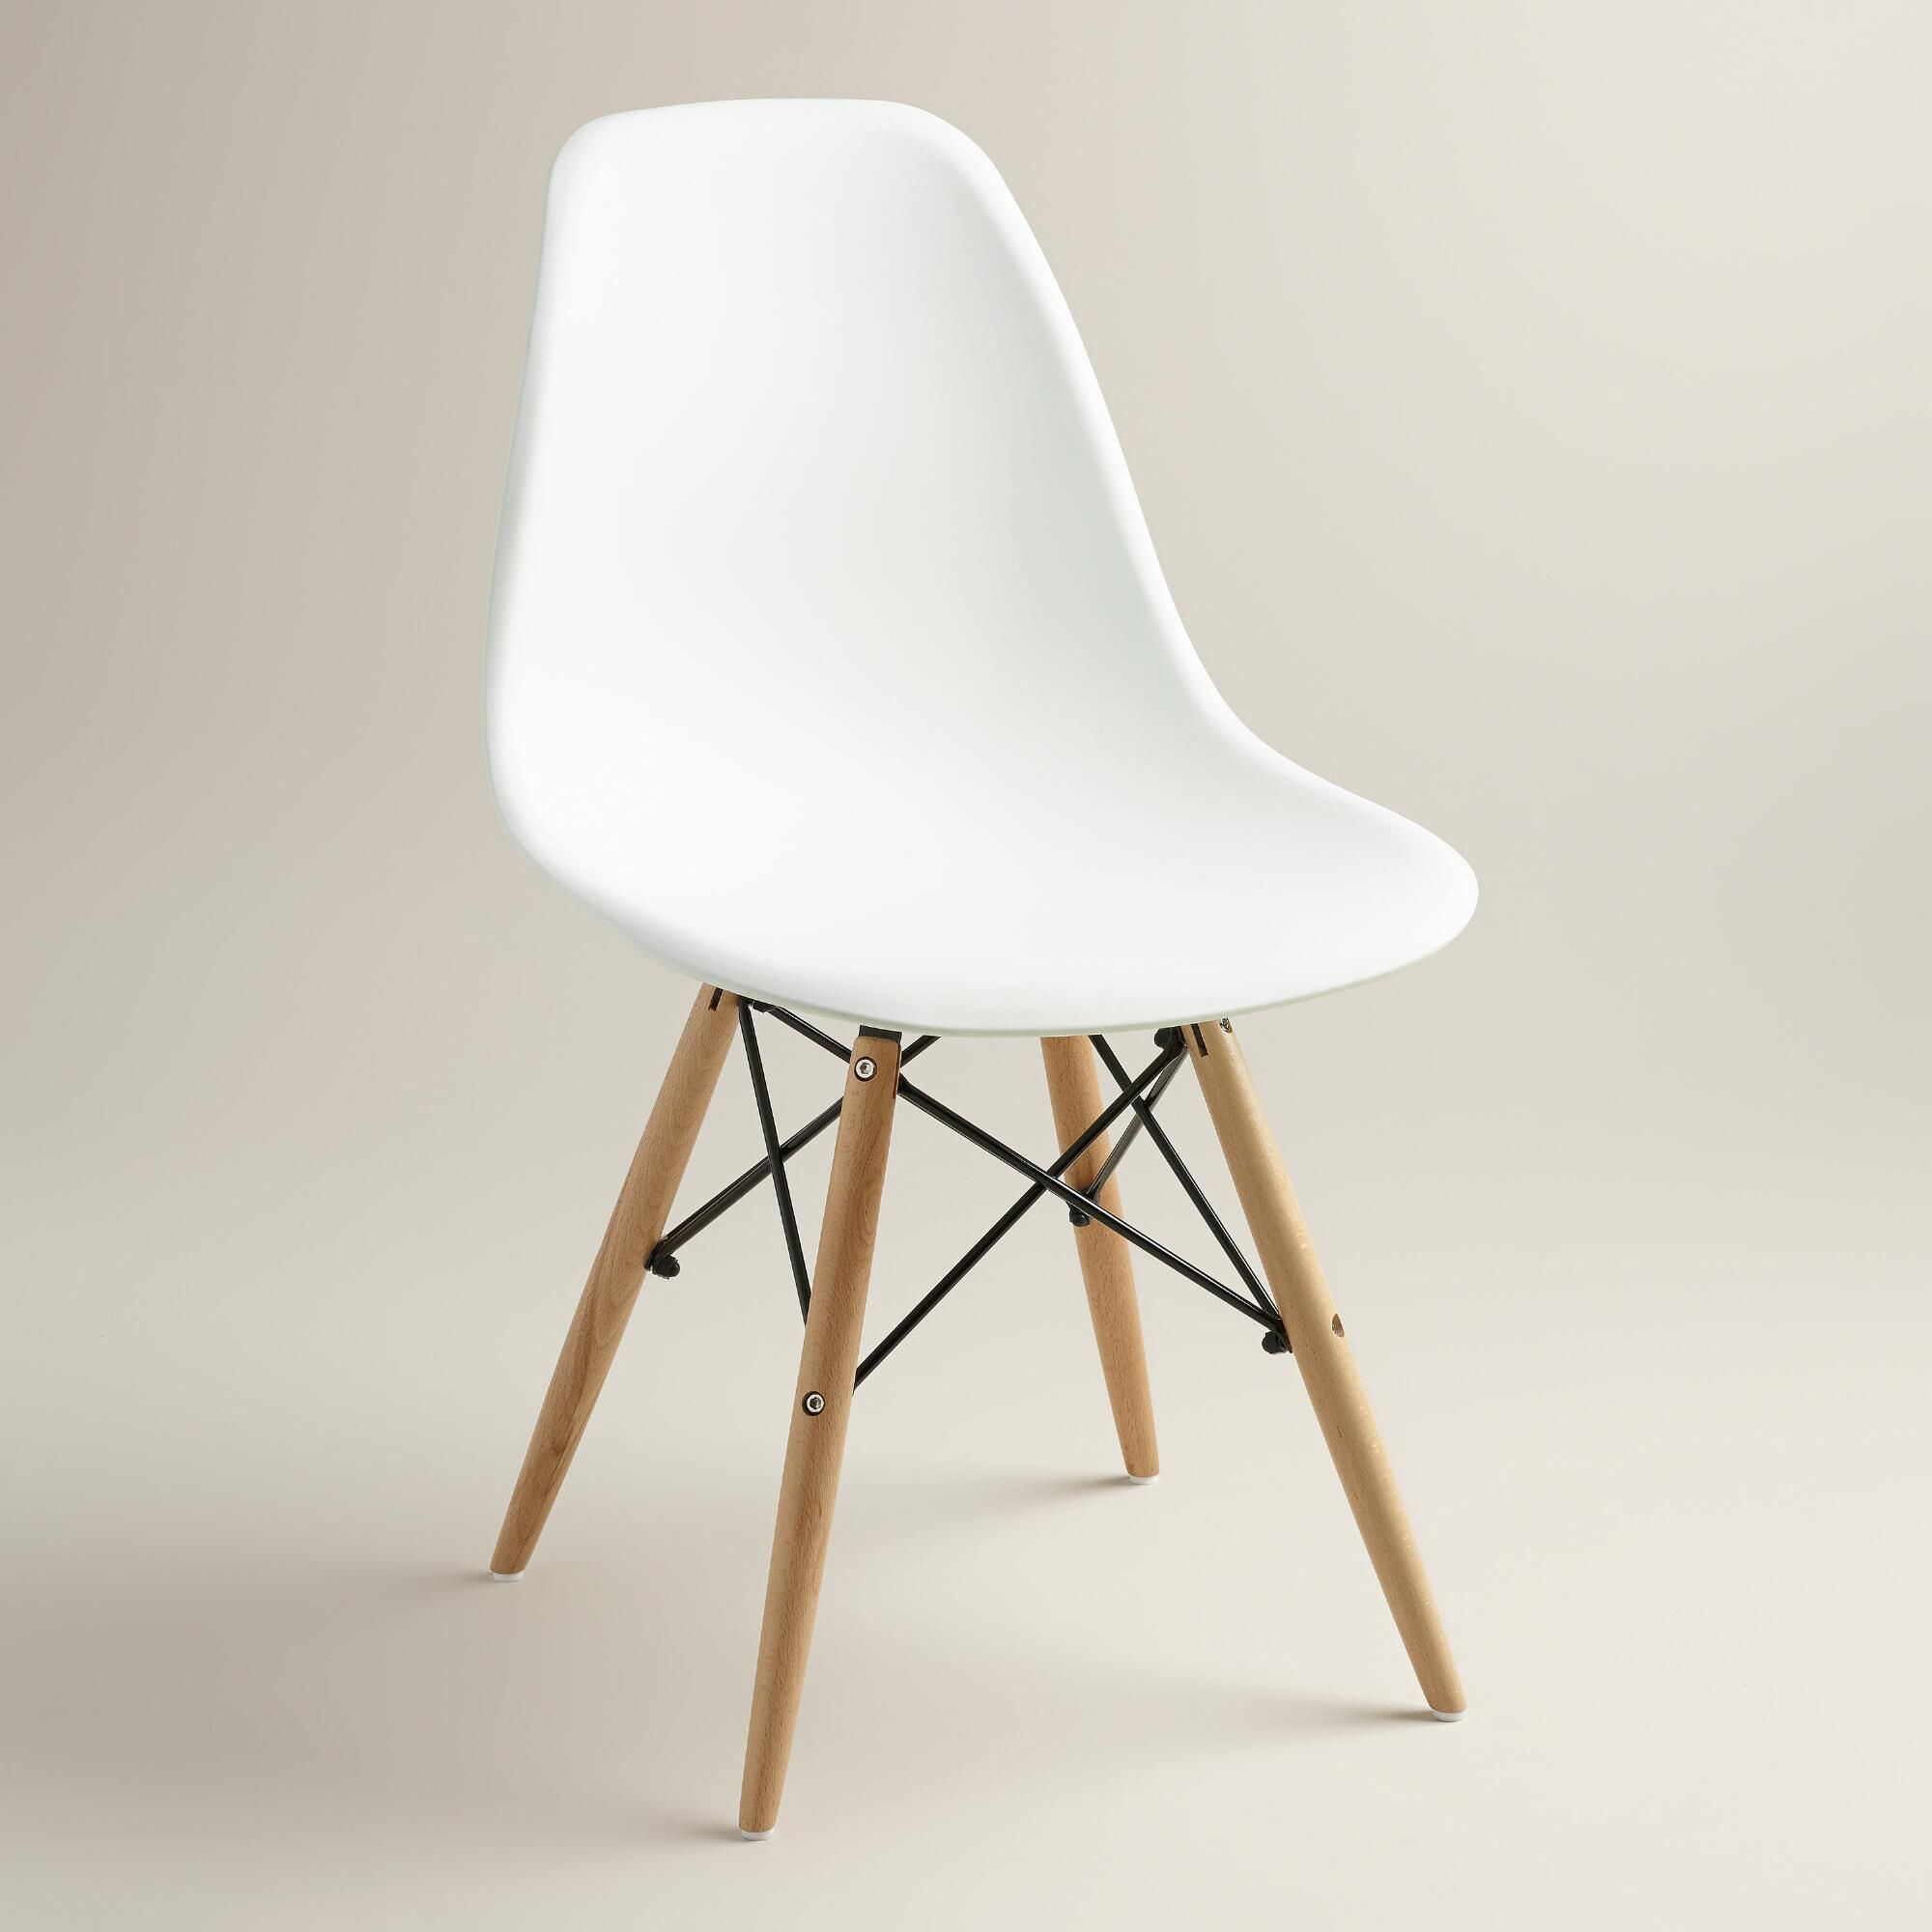 White Molded Evie Chairs Set Of 2 2 Aesthetics And Eames